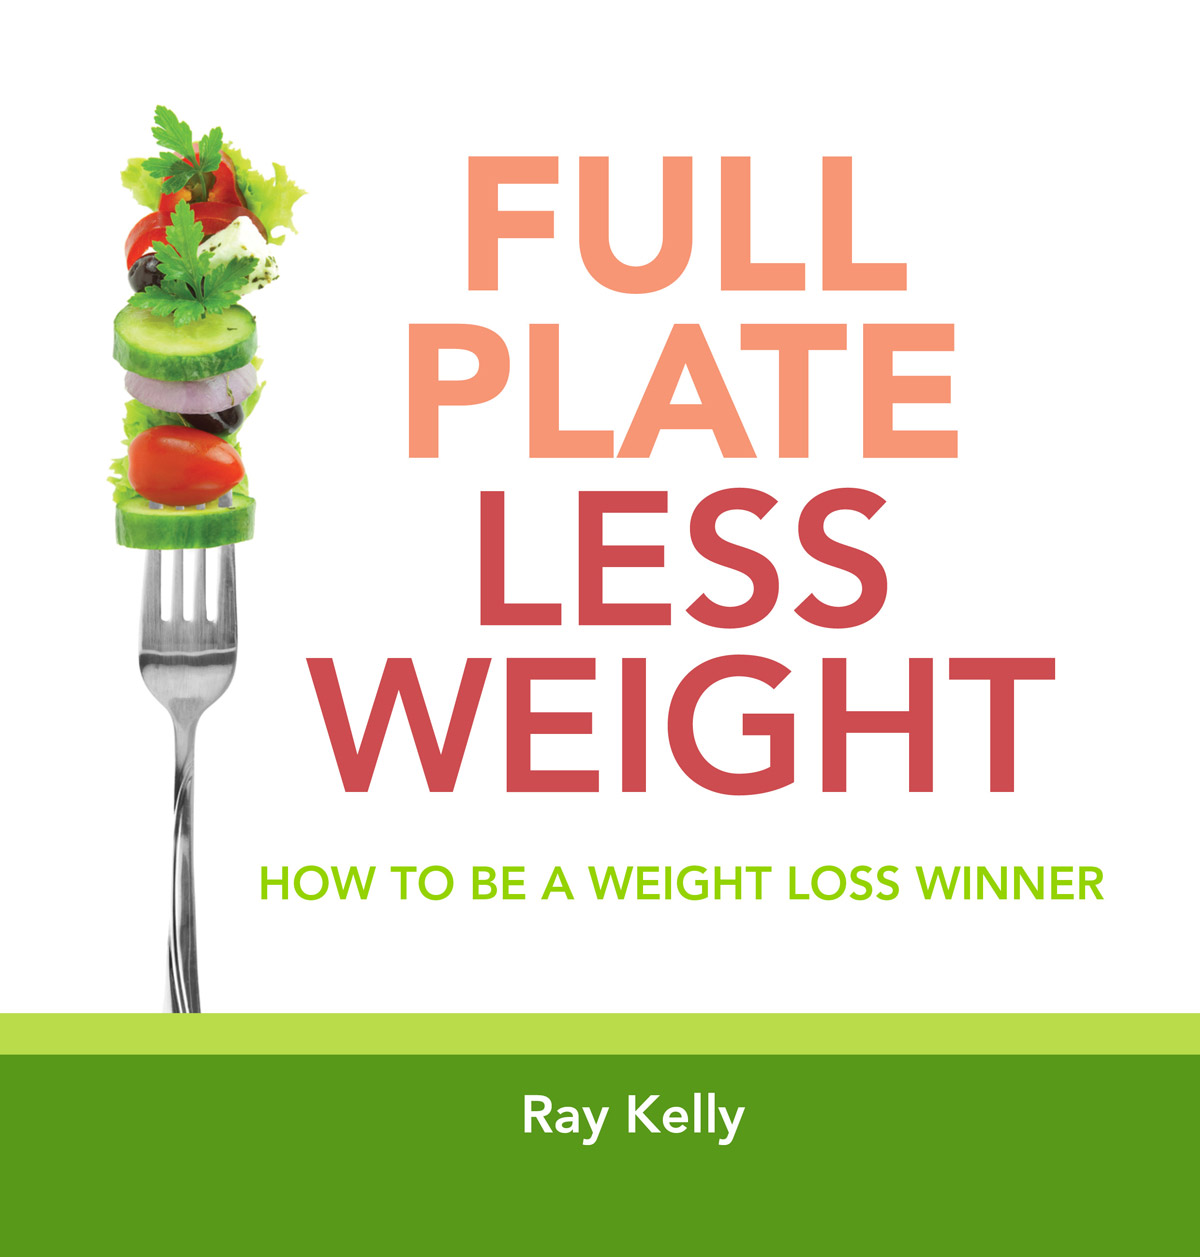 Full Plate Less Weight - Ray Kelly